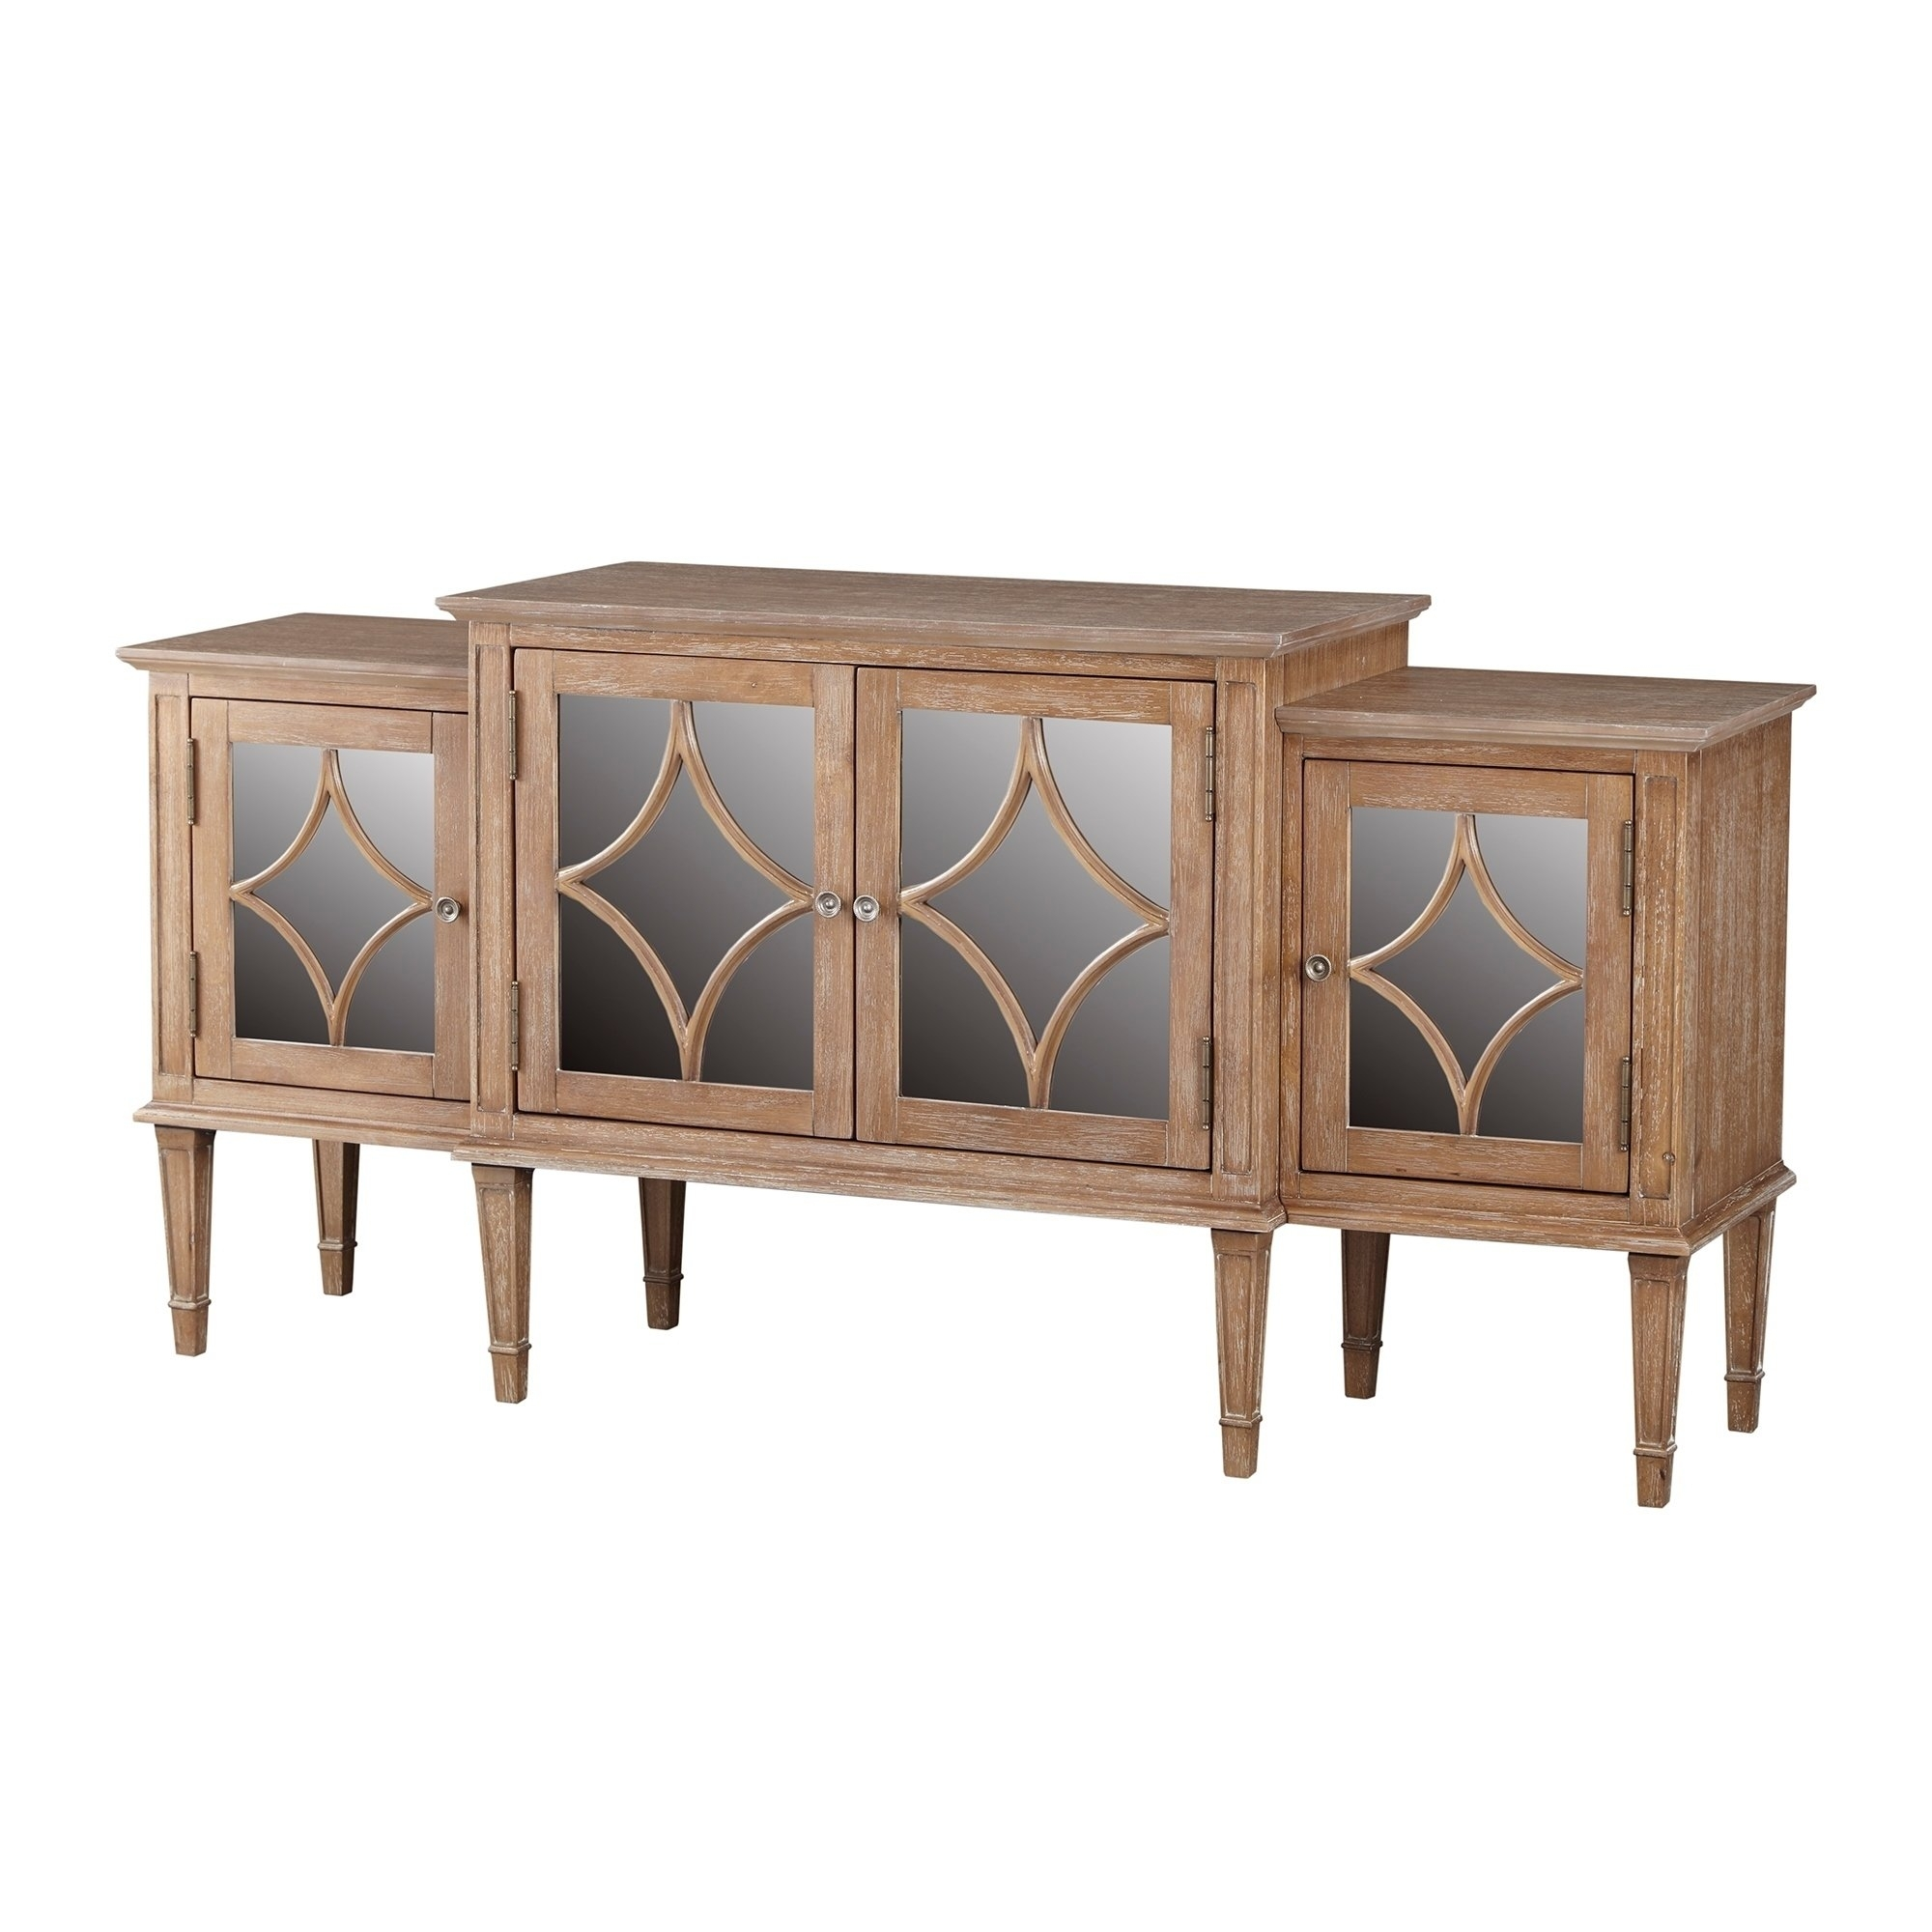 Buy Buffets, Sideboards & China Cabinets Online At Overstock With Regard To Current Light Brown Reclaimed Elm & Pine 84 Inch Sideboards (View 13 of 20)